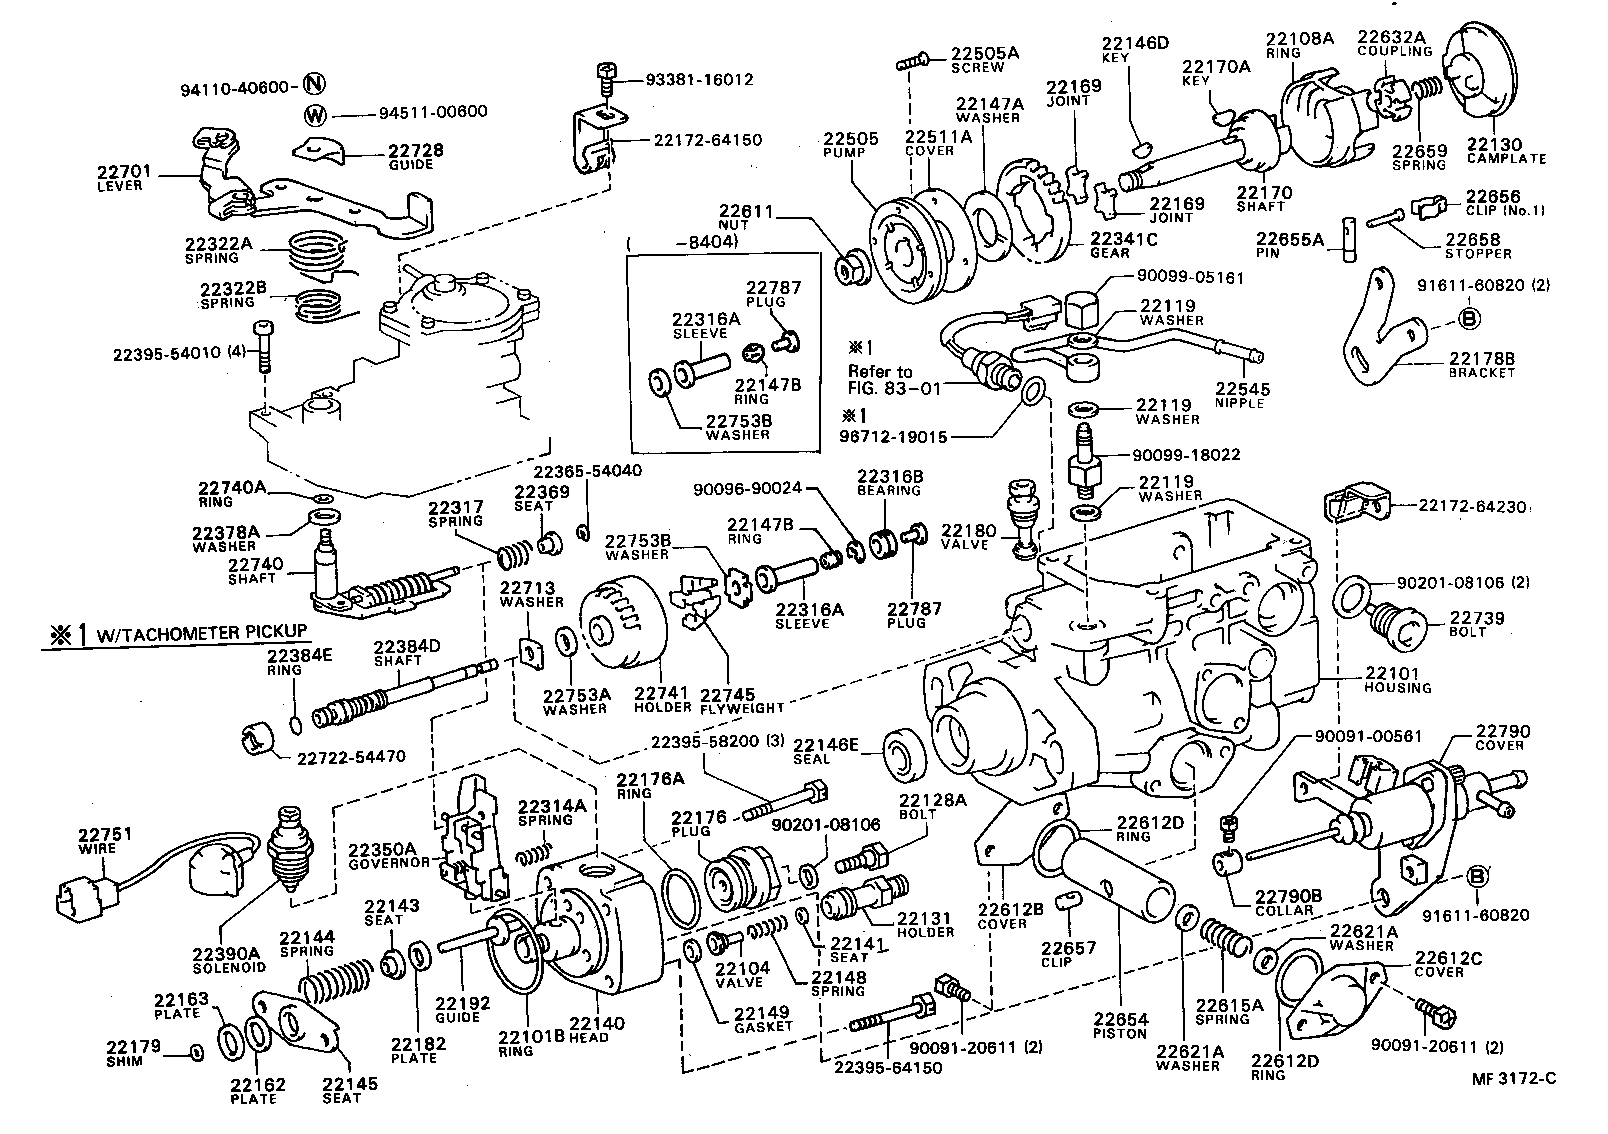 2009 Camry Engine Diagram Wiring Will Be A Thing Toyota Motor Pot U00eancia Do Rotativo Parts 1999 Es300 V6